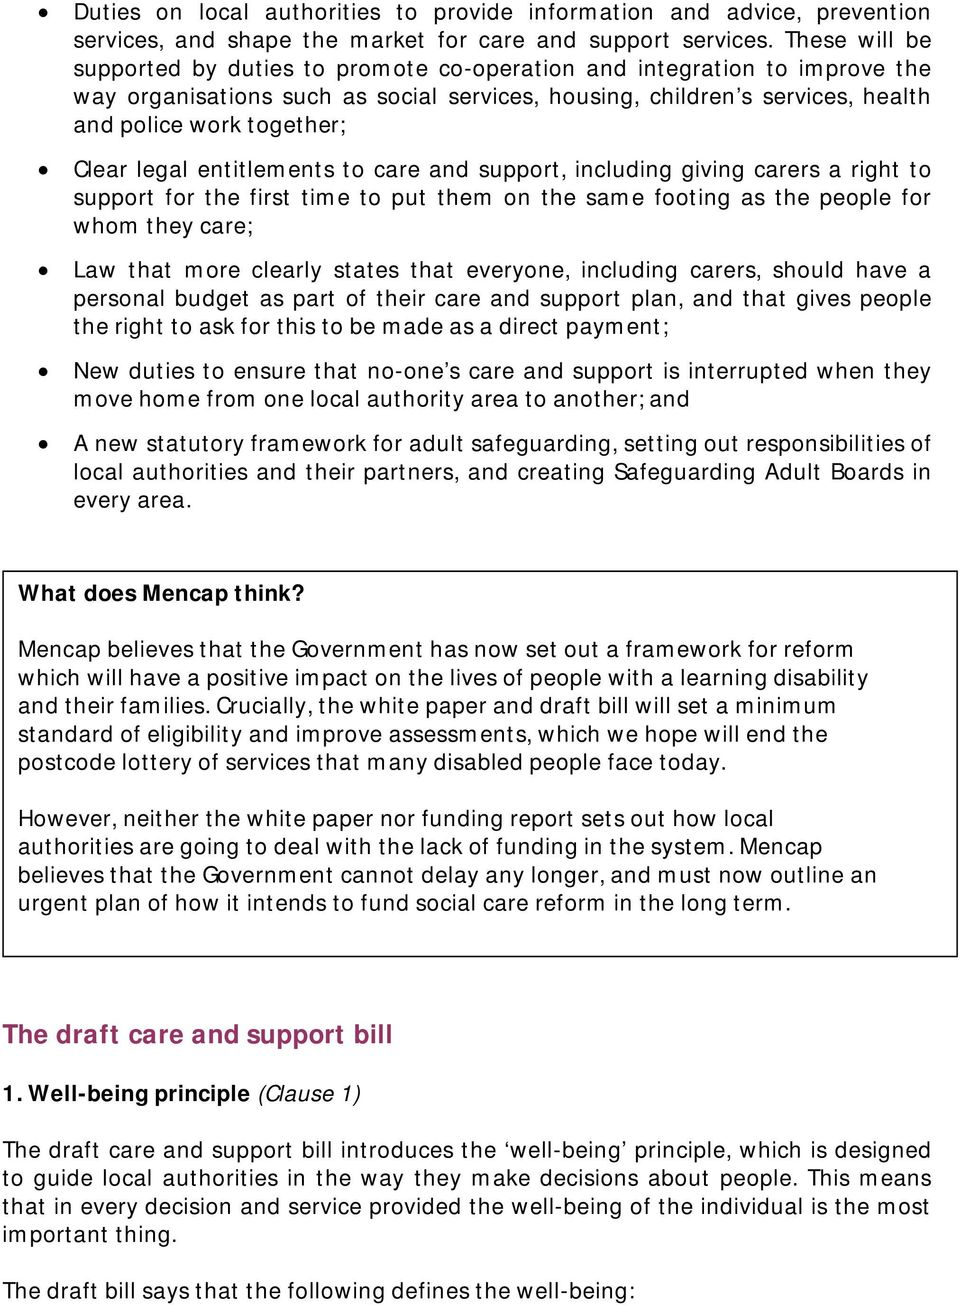 Clear legal entitlements to care and support, including giving carers a right to support for the first time to put them on the same footing as the people for whom they care; Law that more clearly